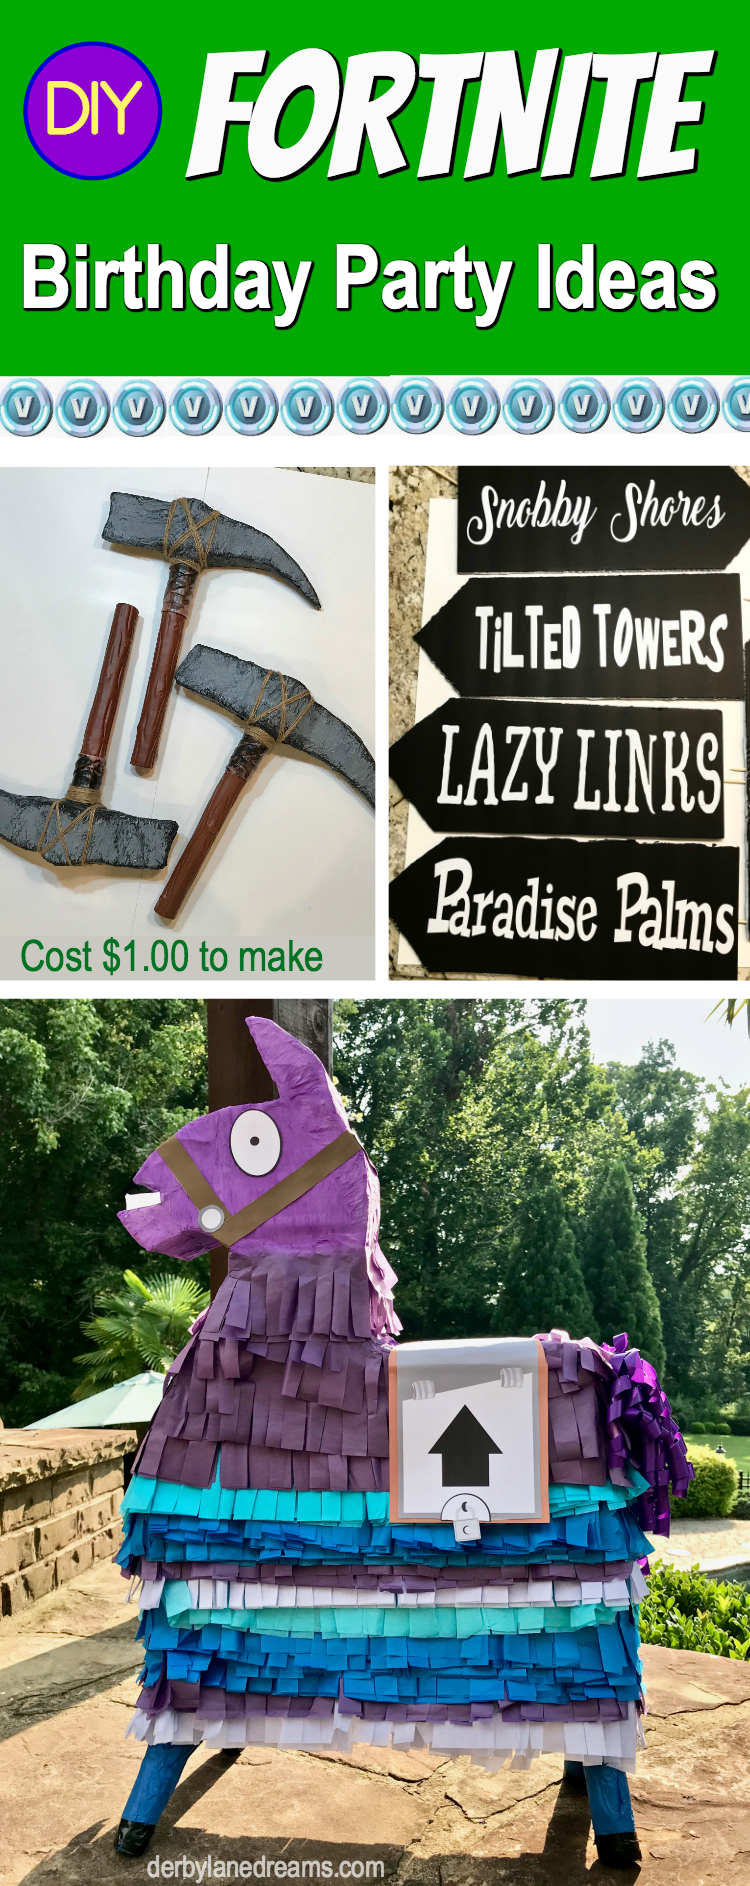 Fortnite Birthday Party Ideas and DIY Decorations for Cheap!  Make this their best party ever!  They will totally LOVE you for this one! #Fortnite #partyplanning #DIY #DIYpartyideas #boybirthdayparty #DIYDecor #ideas #decorations #Nerfwars, #outdoors #outdoorparty #poolparty #cheap #budget #birthday #blog #blogger #kids #forkids #forboys #party #partydecorations